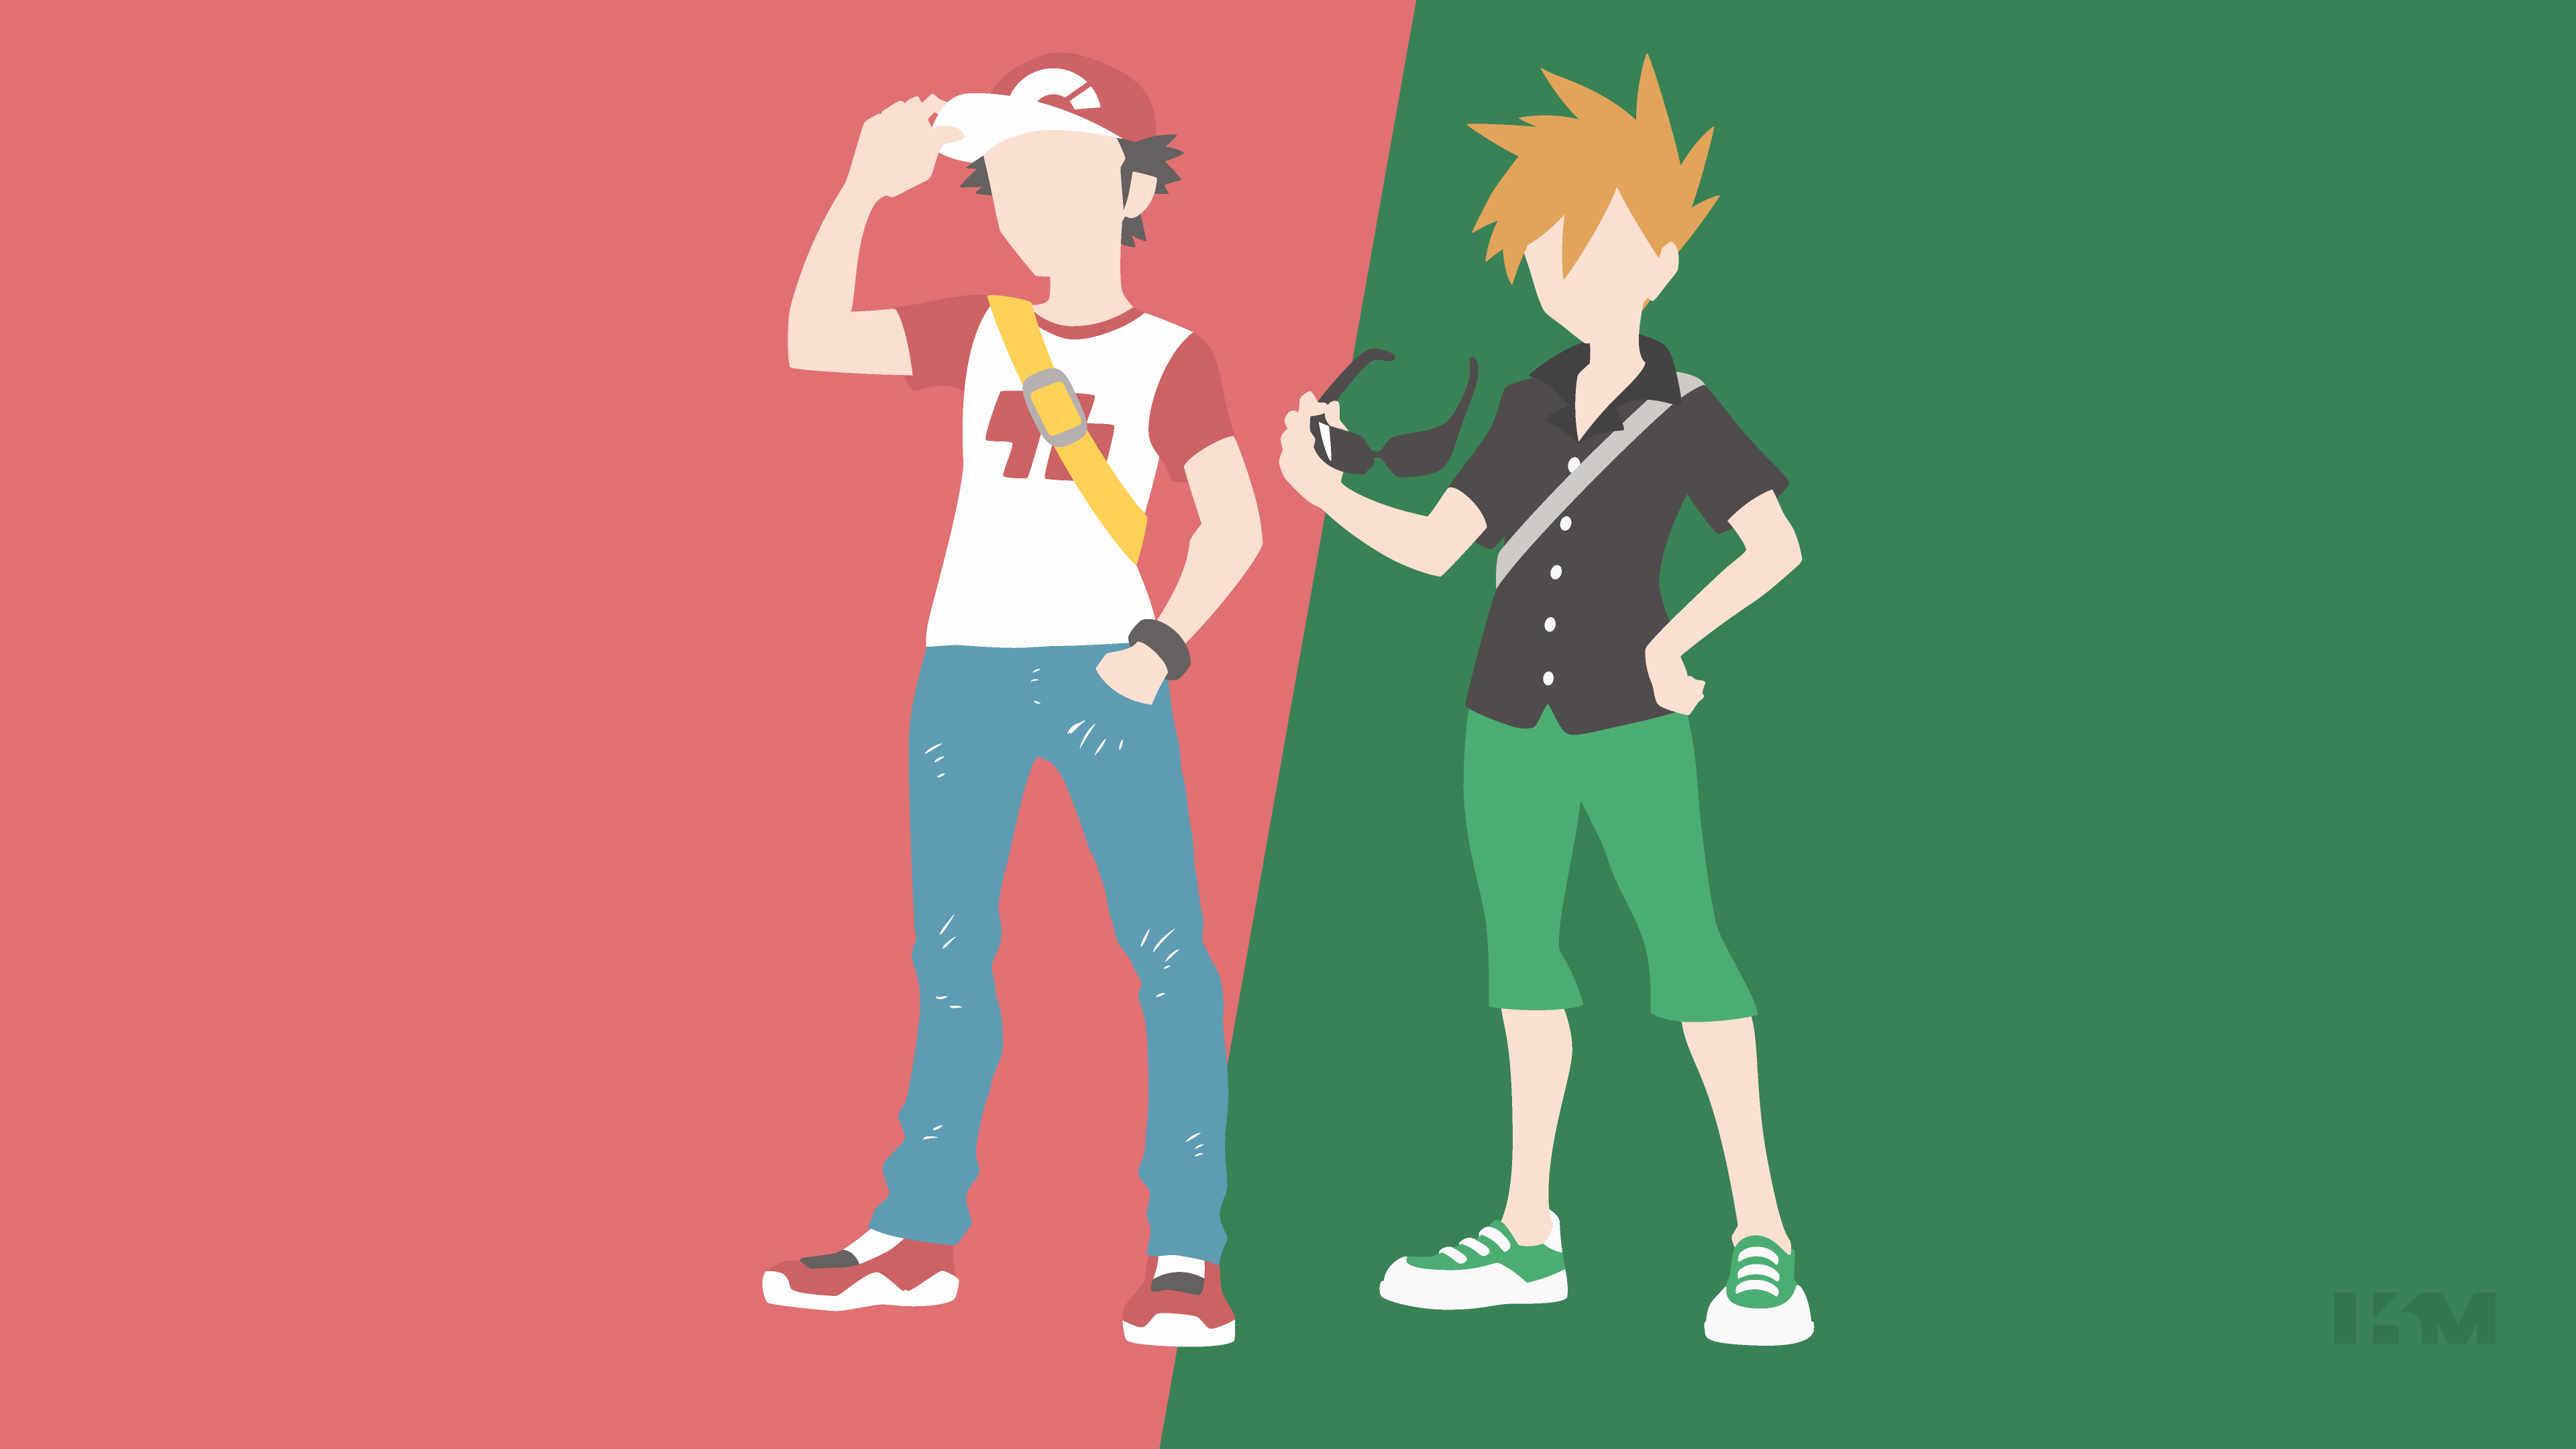 Pokemon Sun/Moon - Trainer Red and Blue by Krukmeister